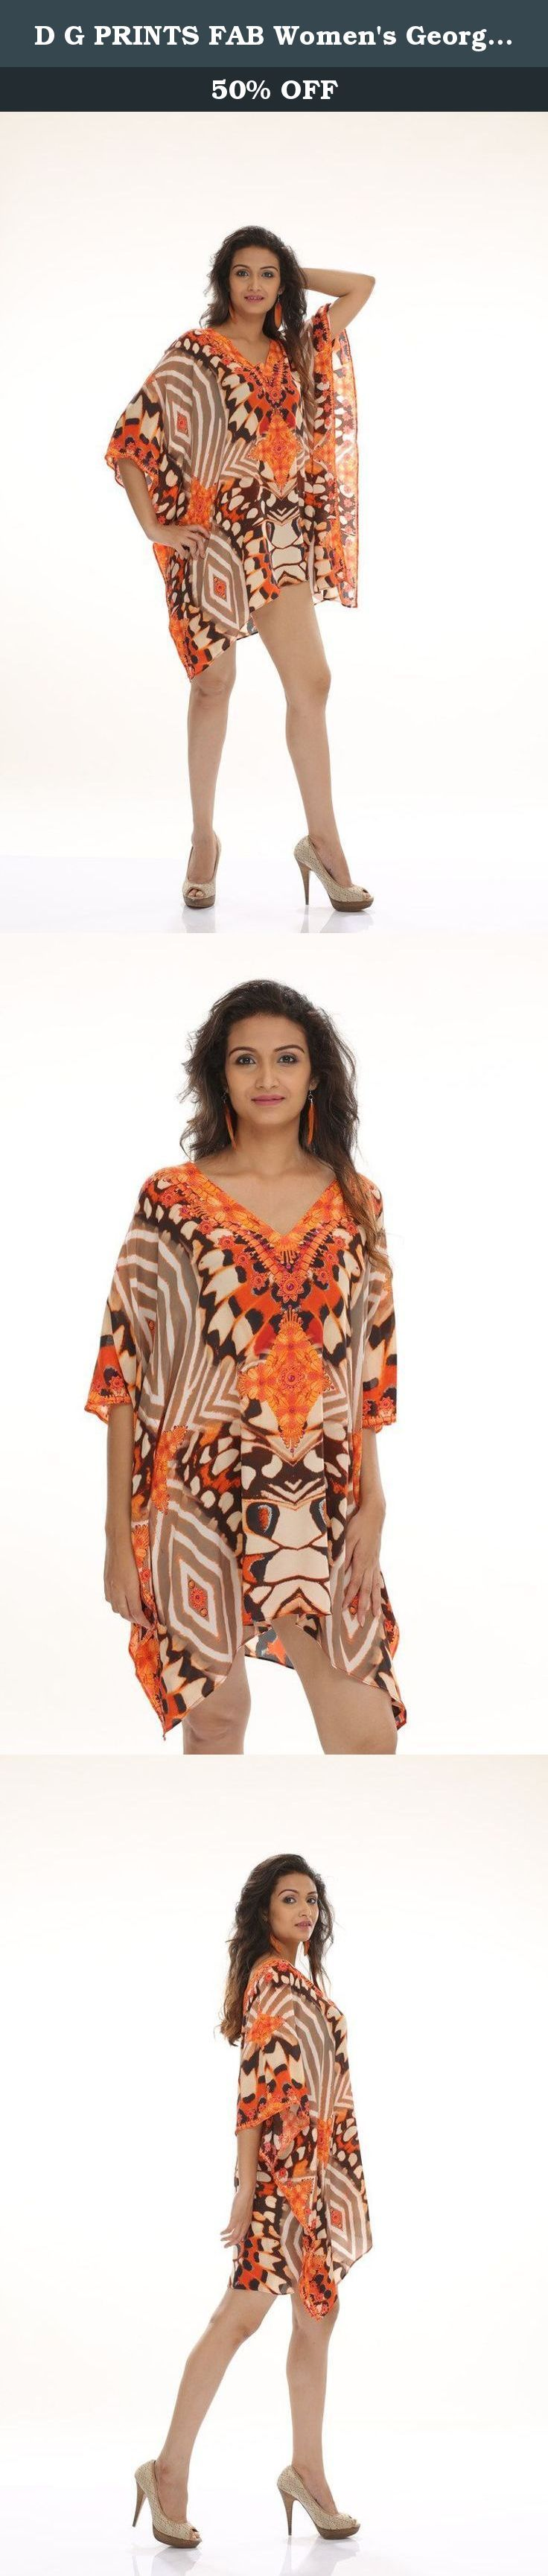 D G PRINTS FAB Women's Georgette Printed Turkish Kaftans Beachwear Bikini Cover up Dress Free Size Multi Color Digital Print. The D G PRINTS FAB Custom Design Digitally Printed Georgette Beach Wear Kaftan (Style No. DGPF-034) is perfect for the warmer climates, they add an awesome splash of vibrant colour and print to your wardrobe. Throw in one these elegant Kaftans in to your suitcase for a tropical vacation getaway, or slip into your shoulder bag for a quick and seamless transition…